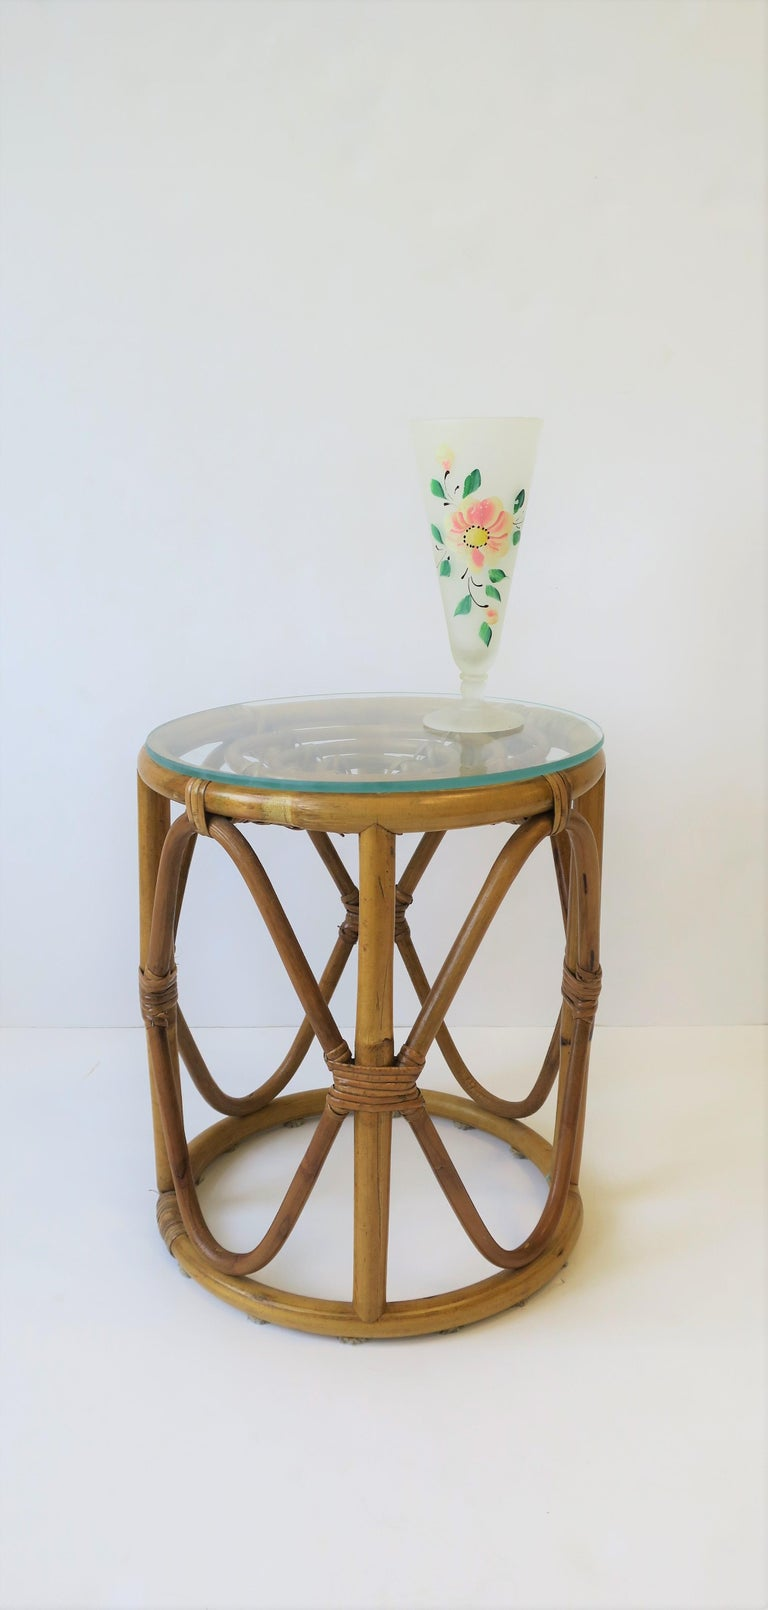 Pleasant Round Wicker Rattan Bentwood Side Table With Glass Top Or Stool Onthecornerstone Fun Painted Chair Ideas Images Onthecornerstoneorg